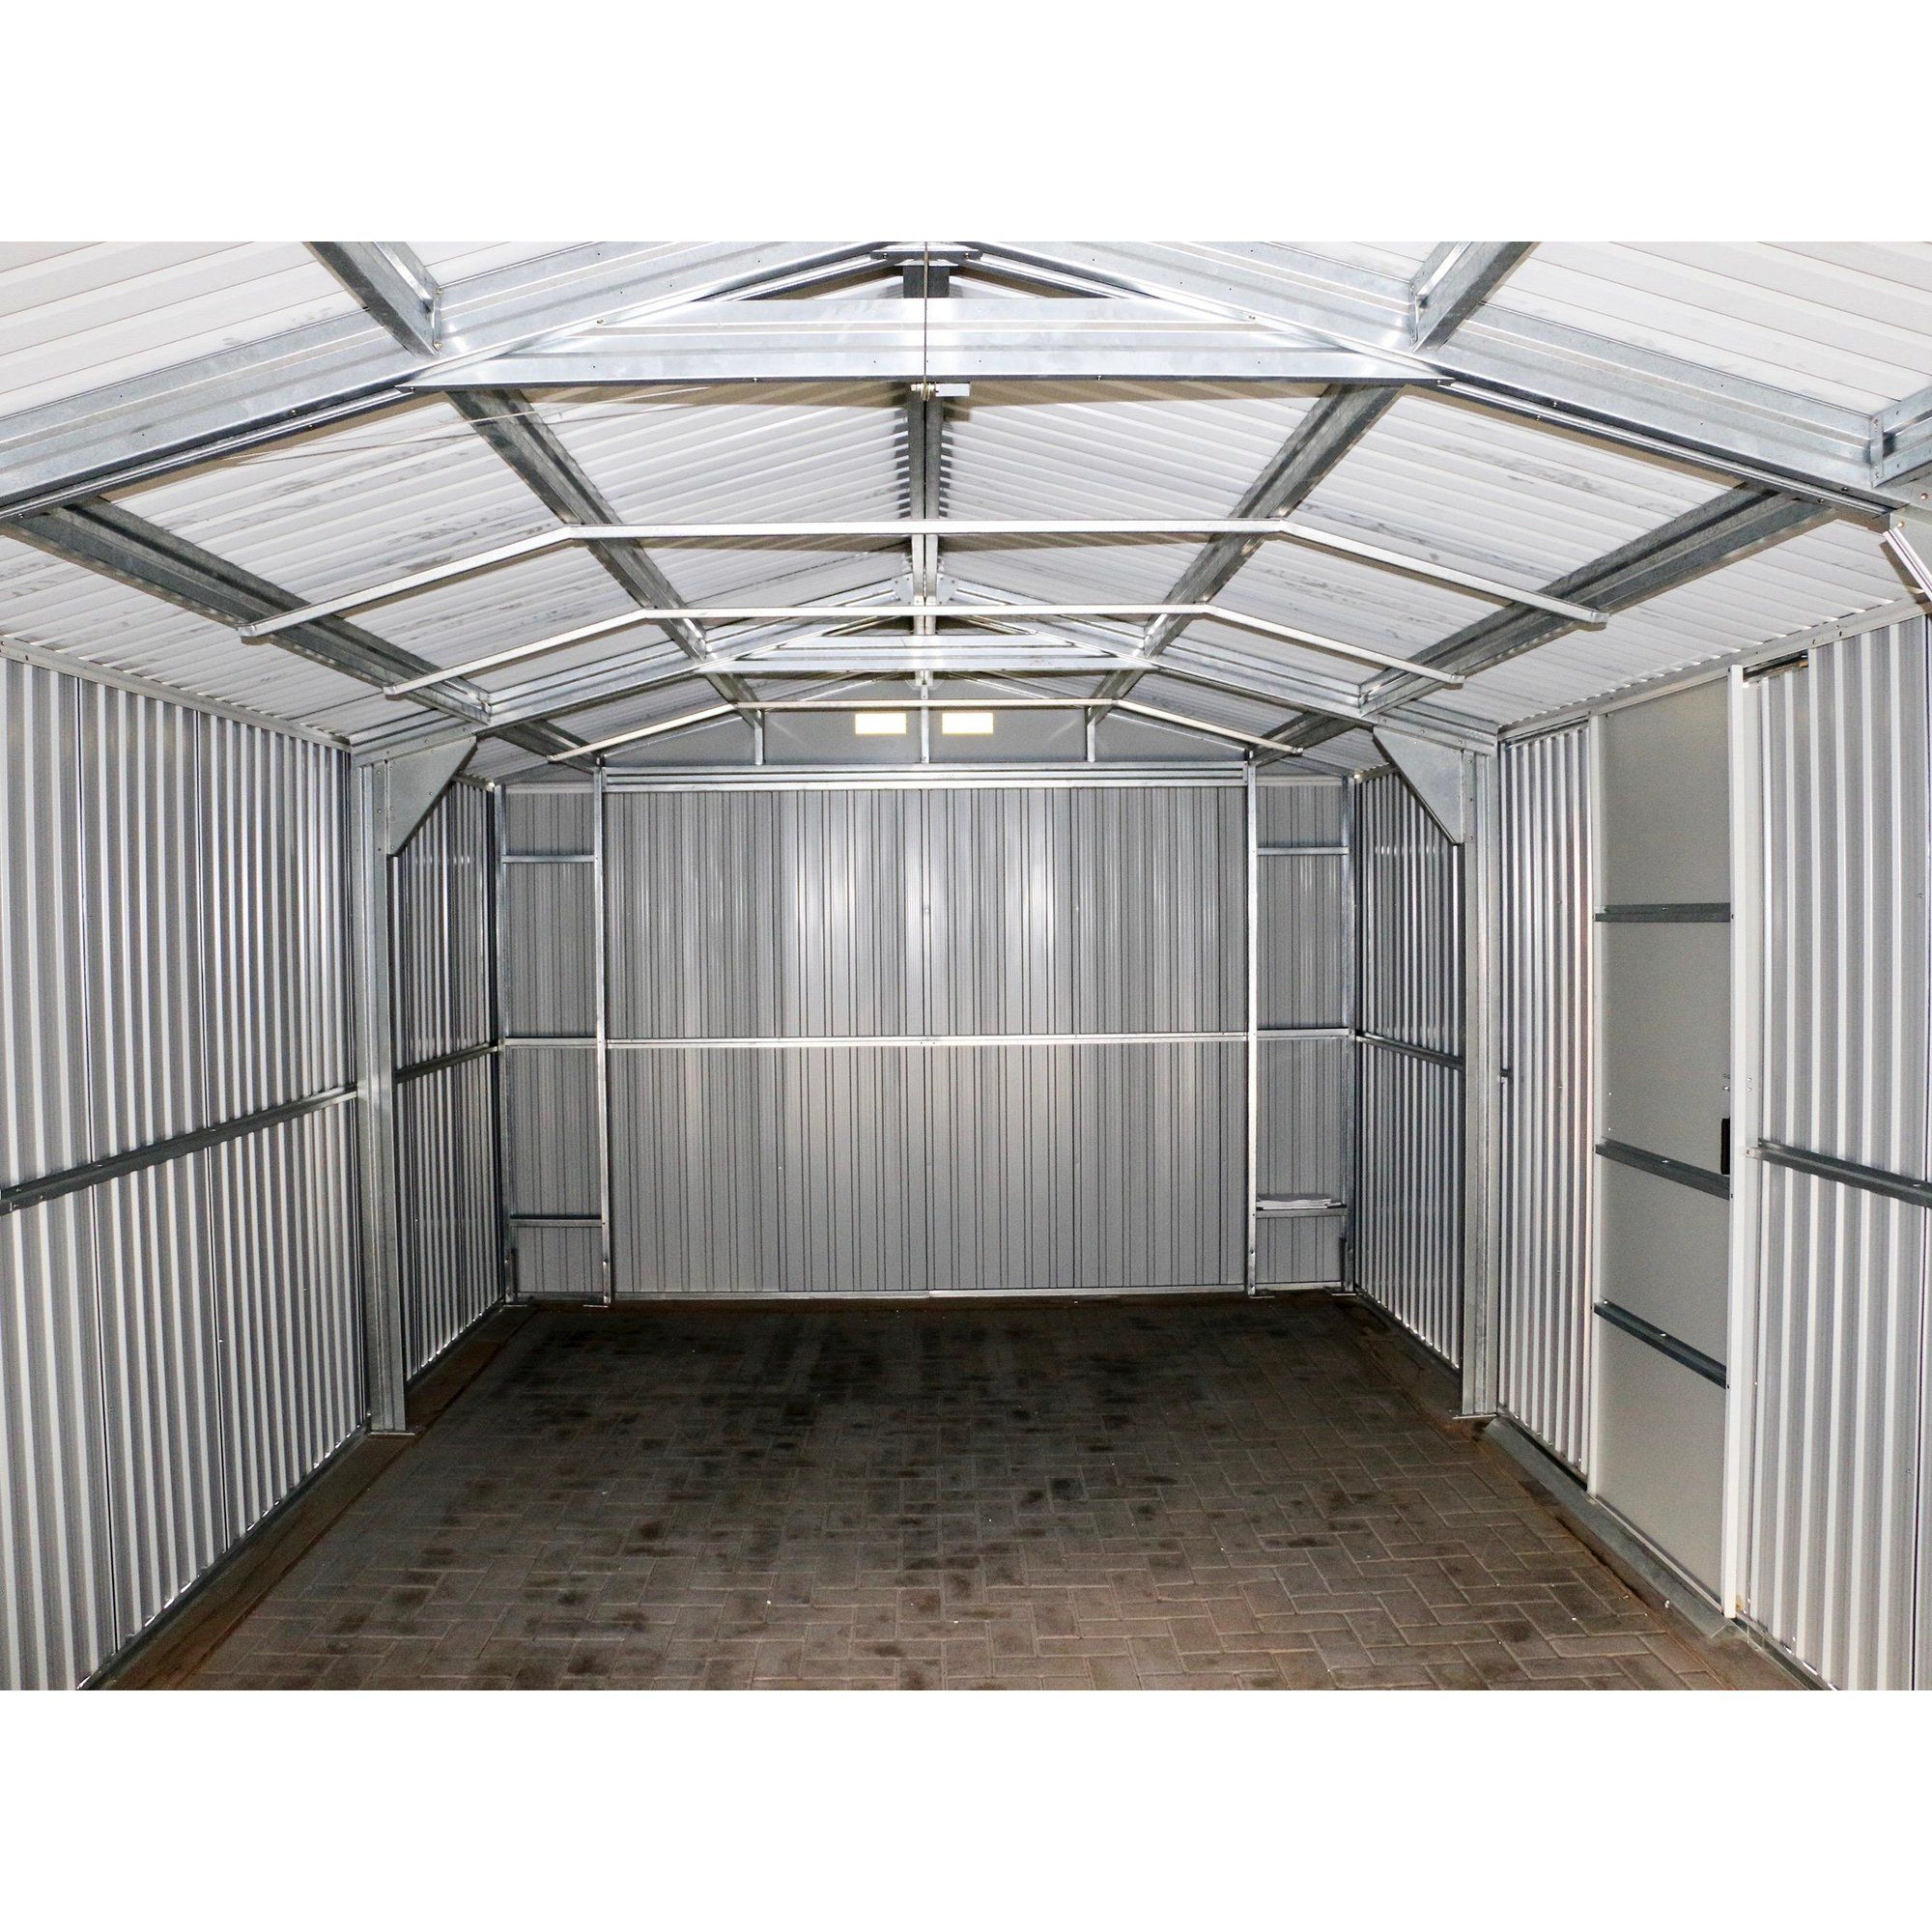 Imperial 12 Ft W X 20 Ft D Metal Garage Shed Shed Building Plans Metal Garages Building A Shed